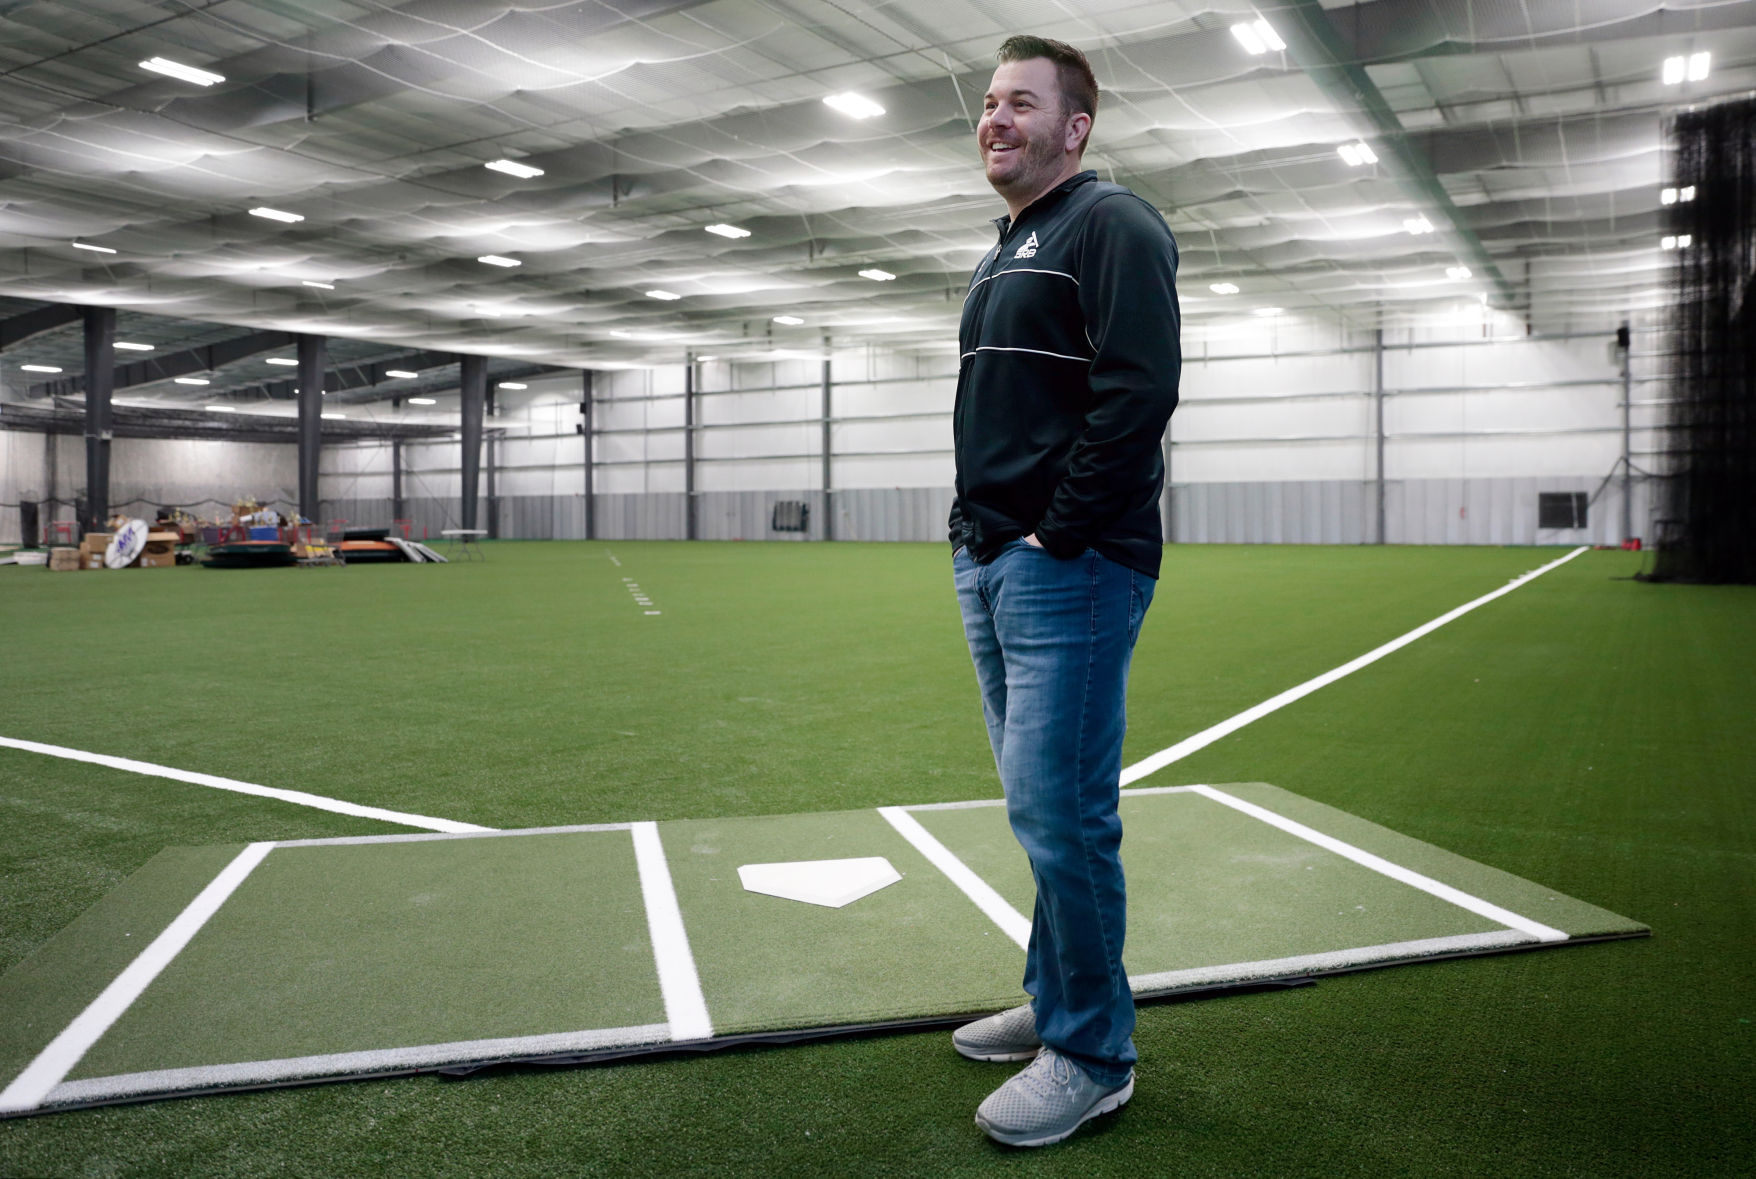 GRB Academy Opens Its Doors On Larger Indoor Baseball Facility